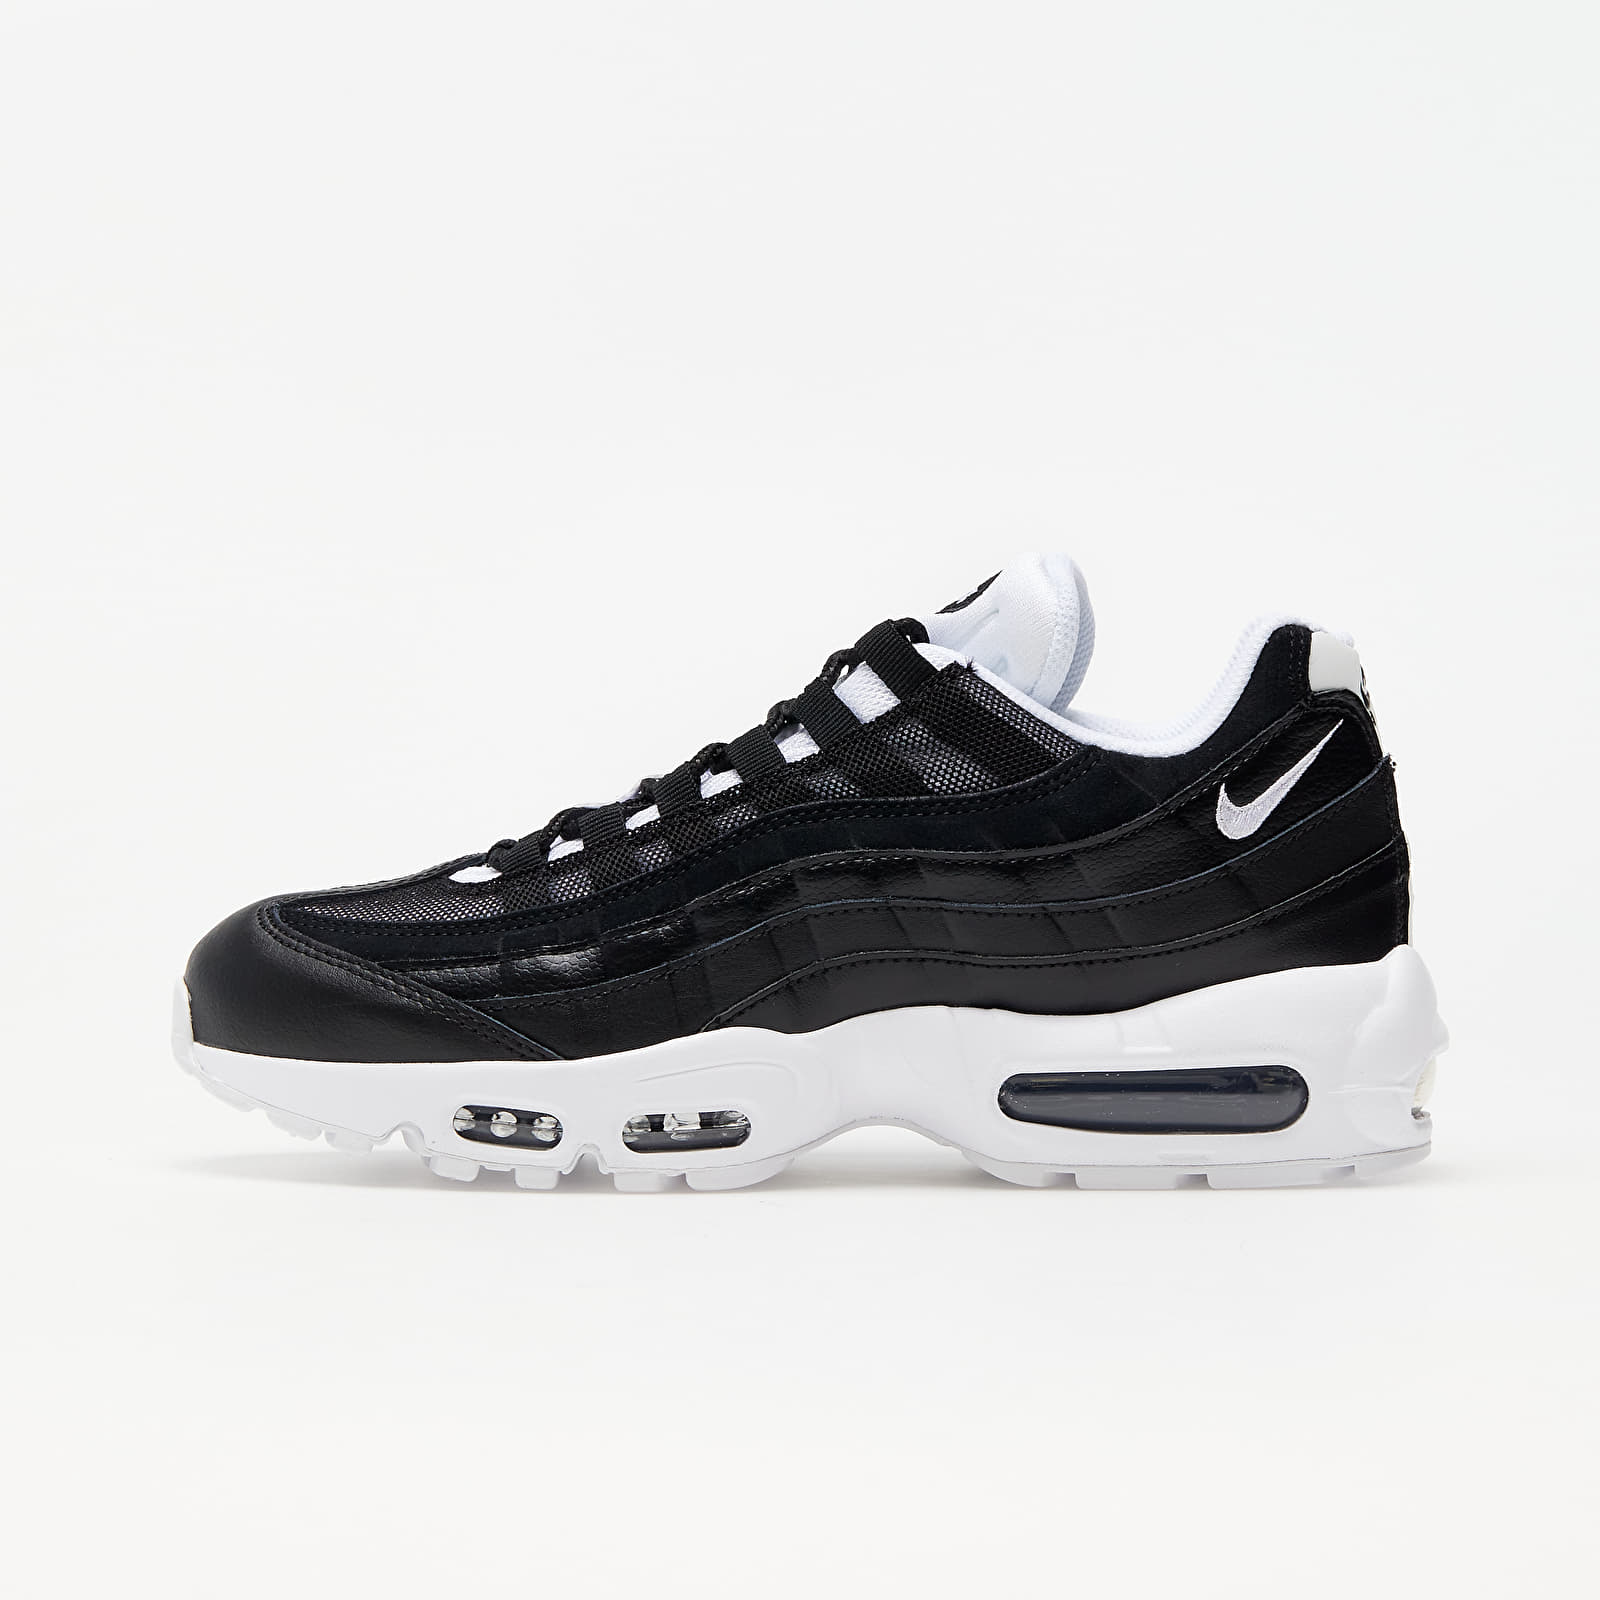 Nike Air Max 95 Essential Black/ White EUR 42